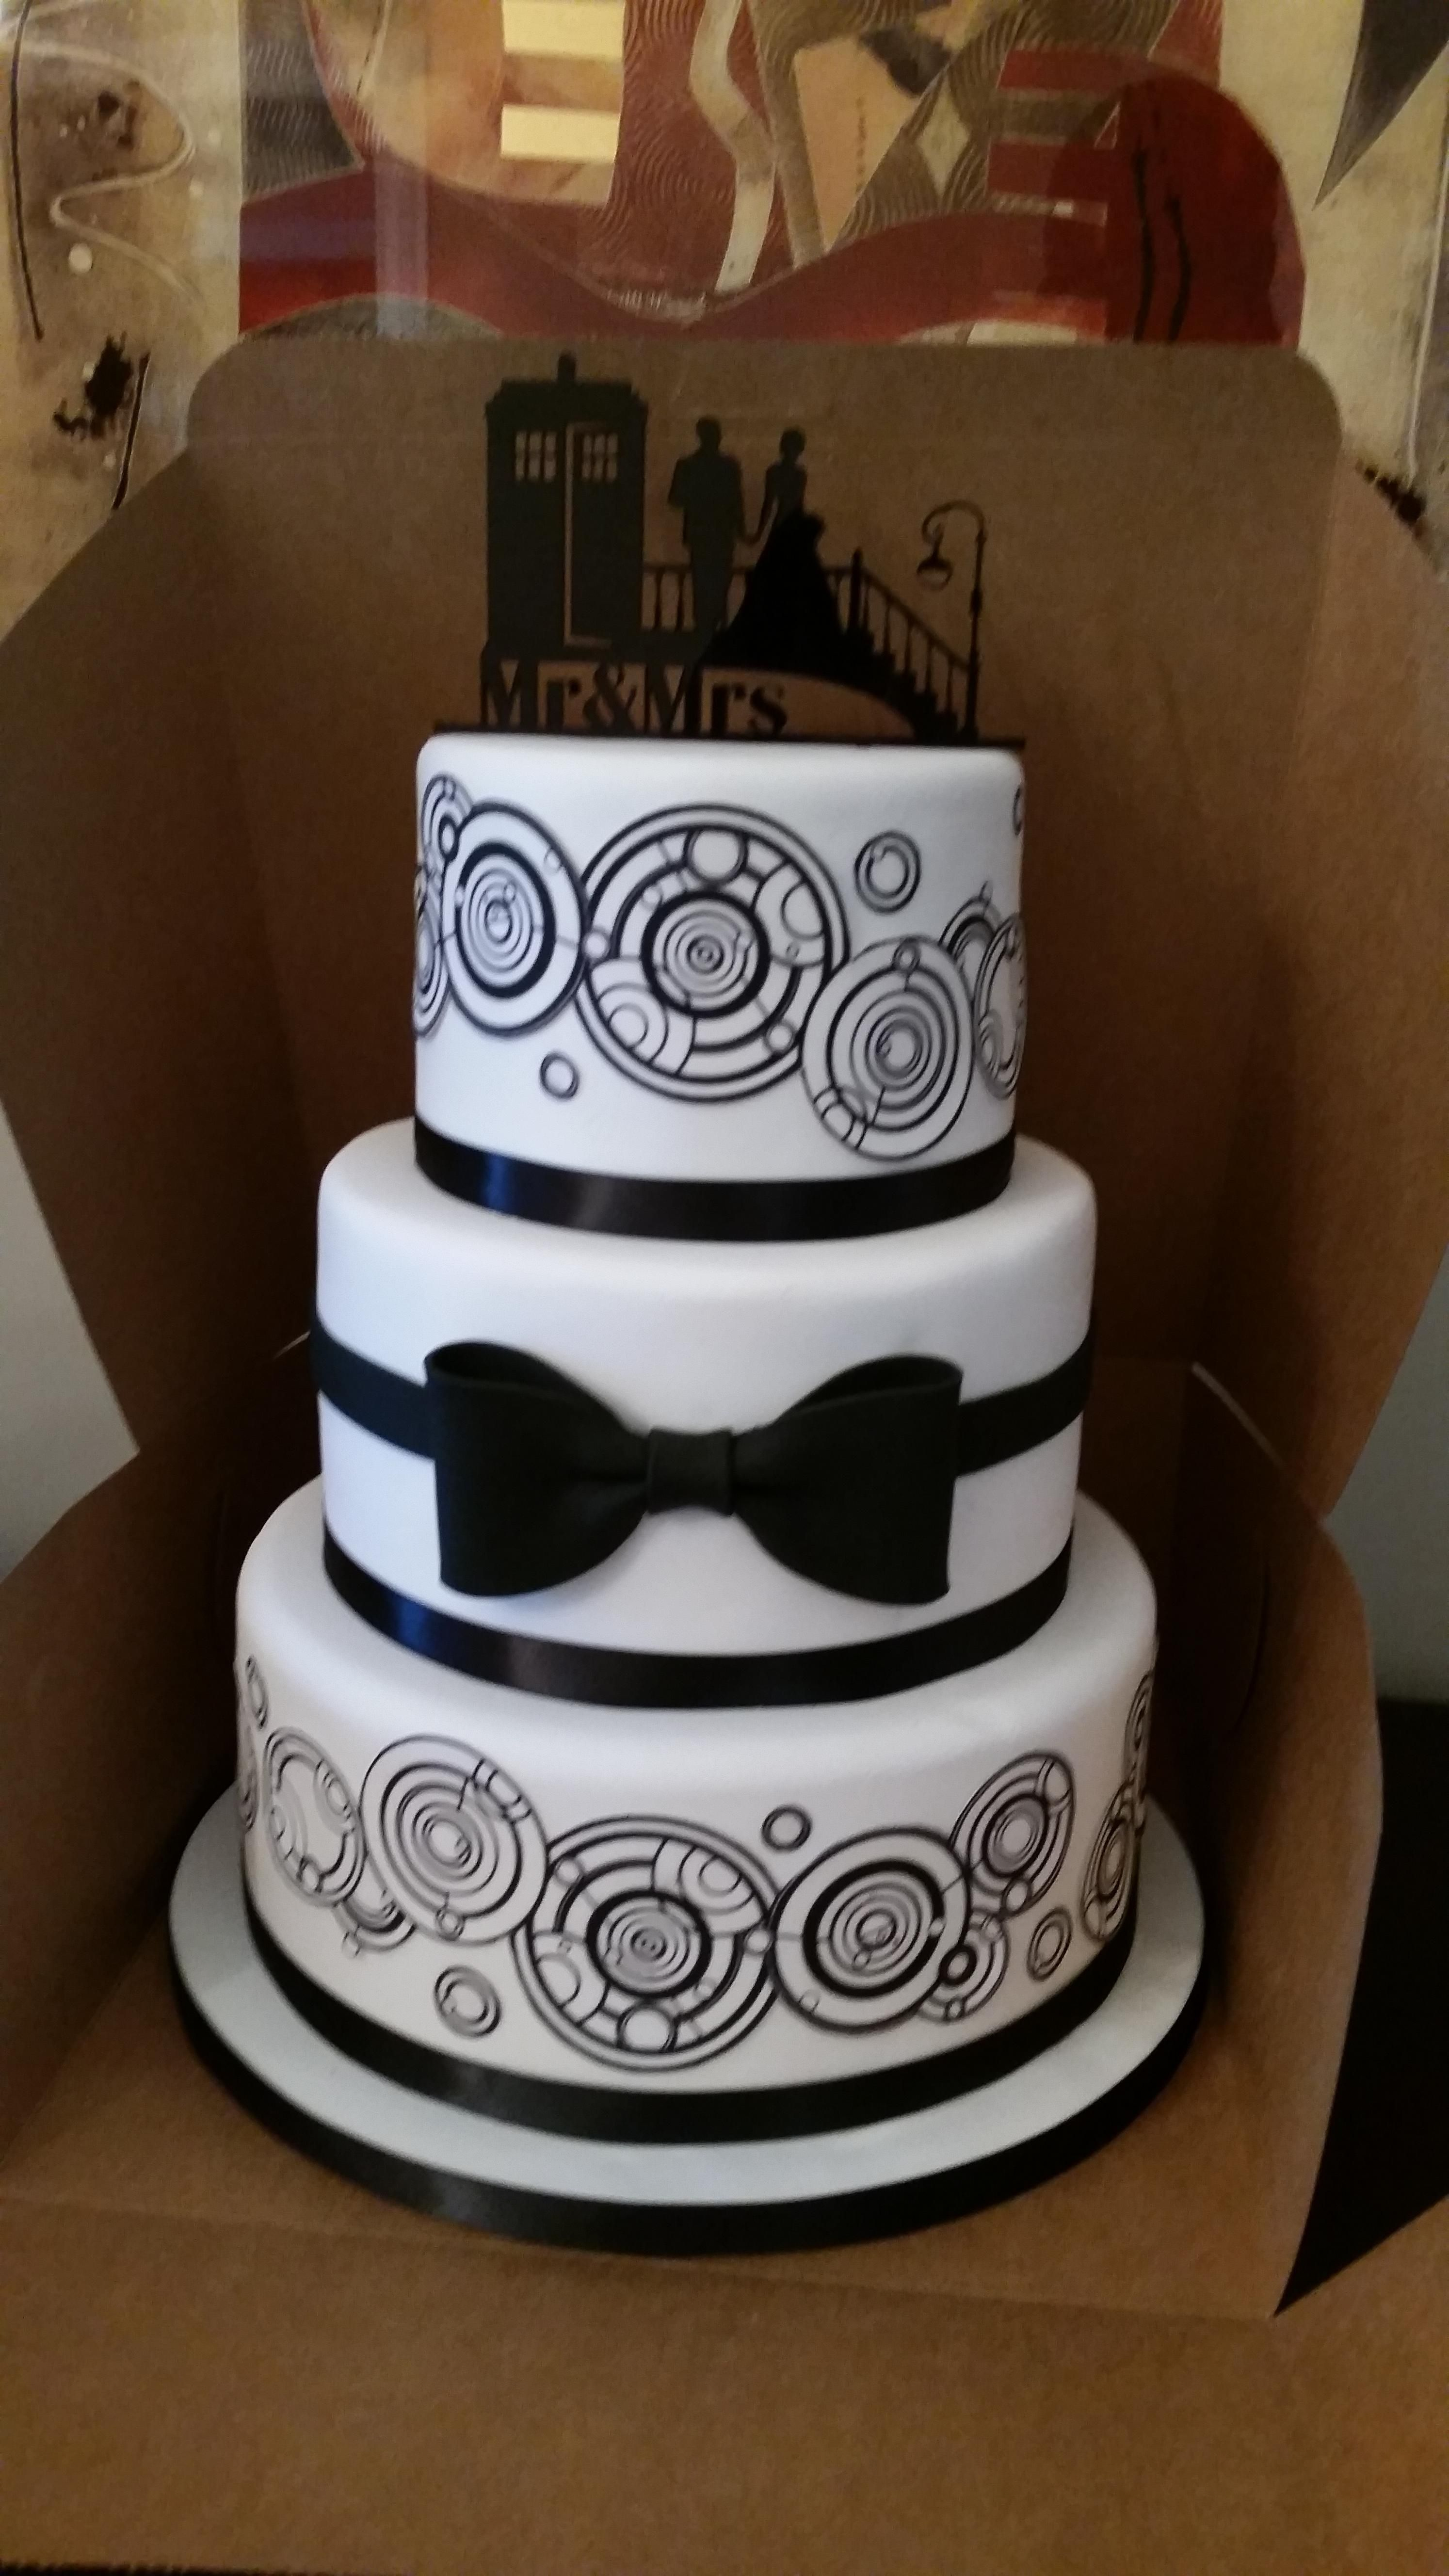 Our Doctor Who wedding cake Wedding cake Cake and Weddings